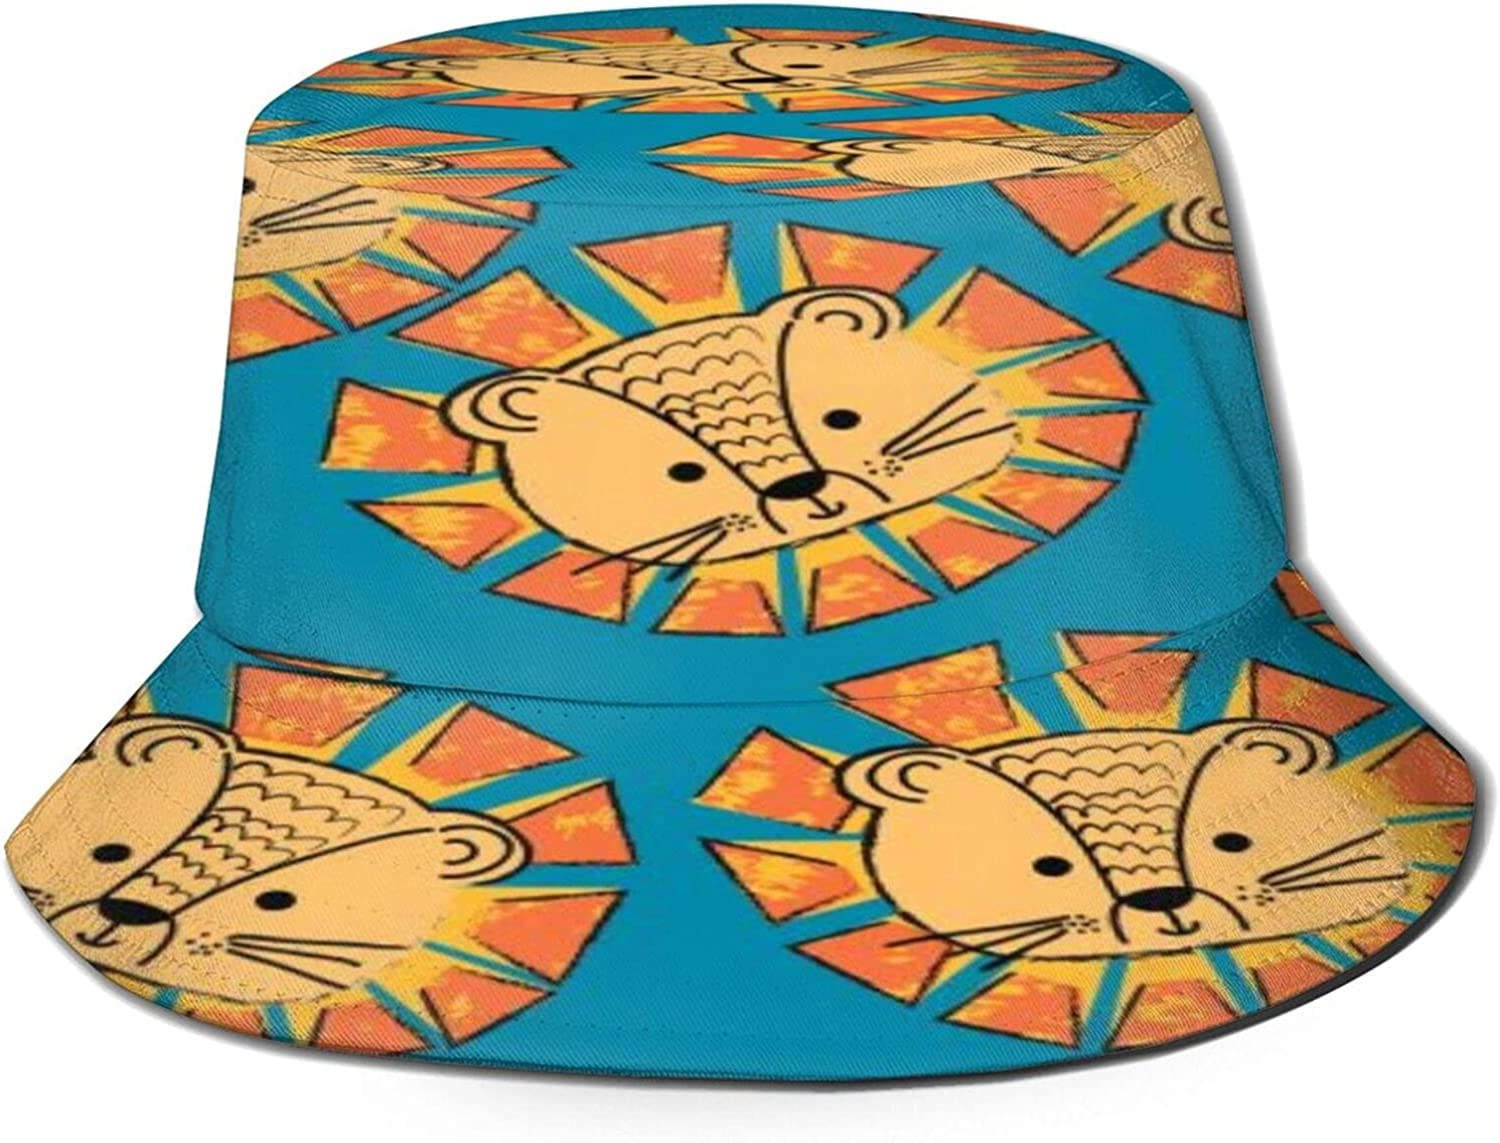 Pattern with Face Lion Bucket Hat Sun Packable Unisex Summer Max 45% OFF Super Special SALE held